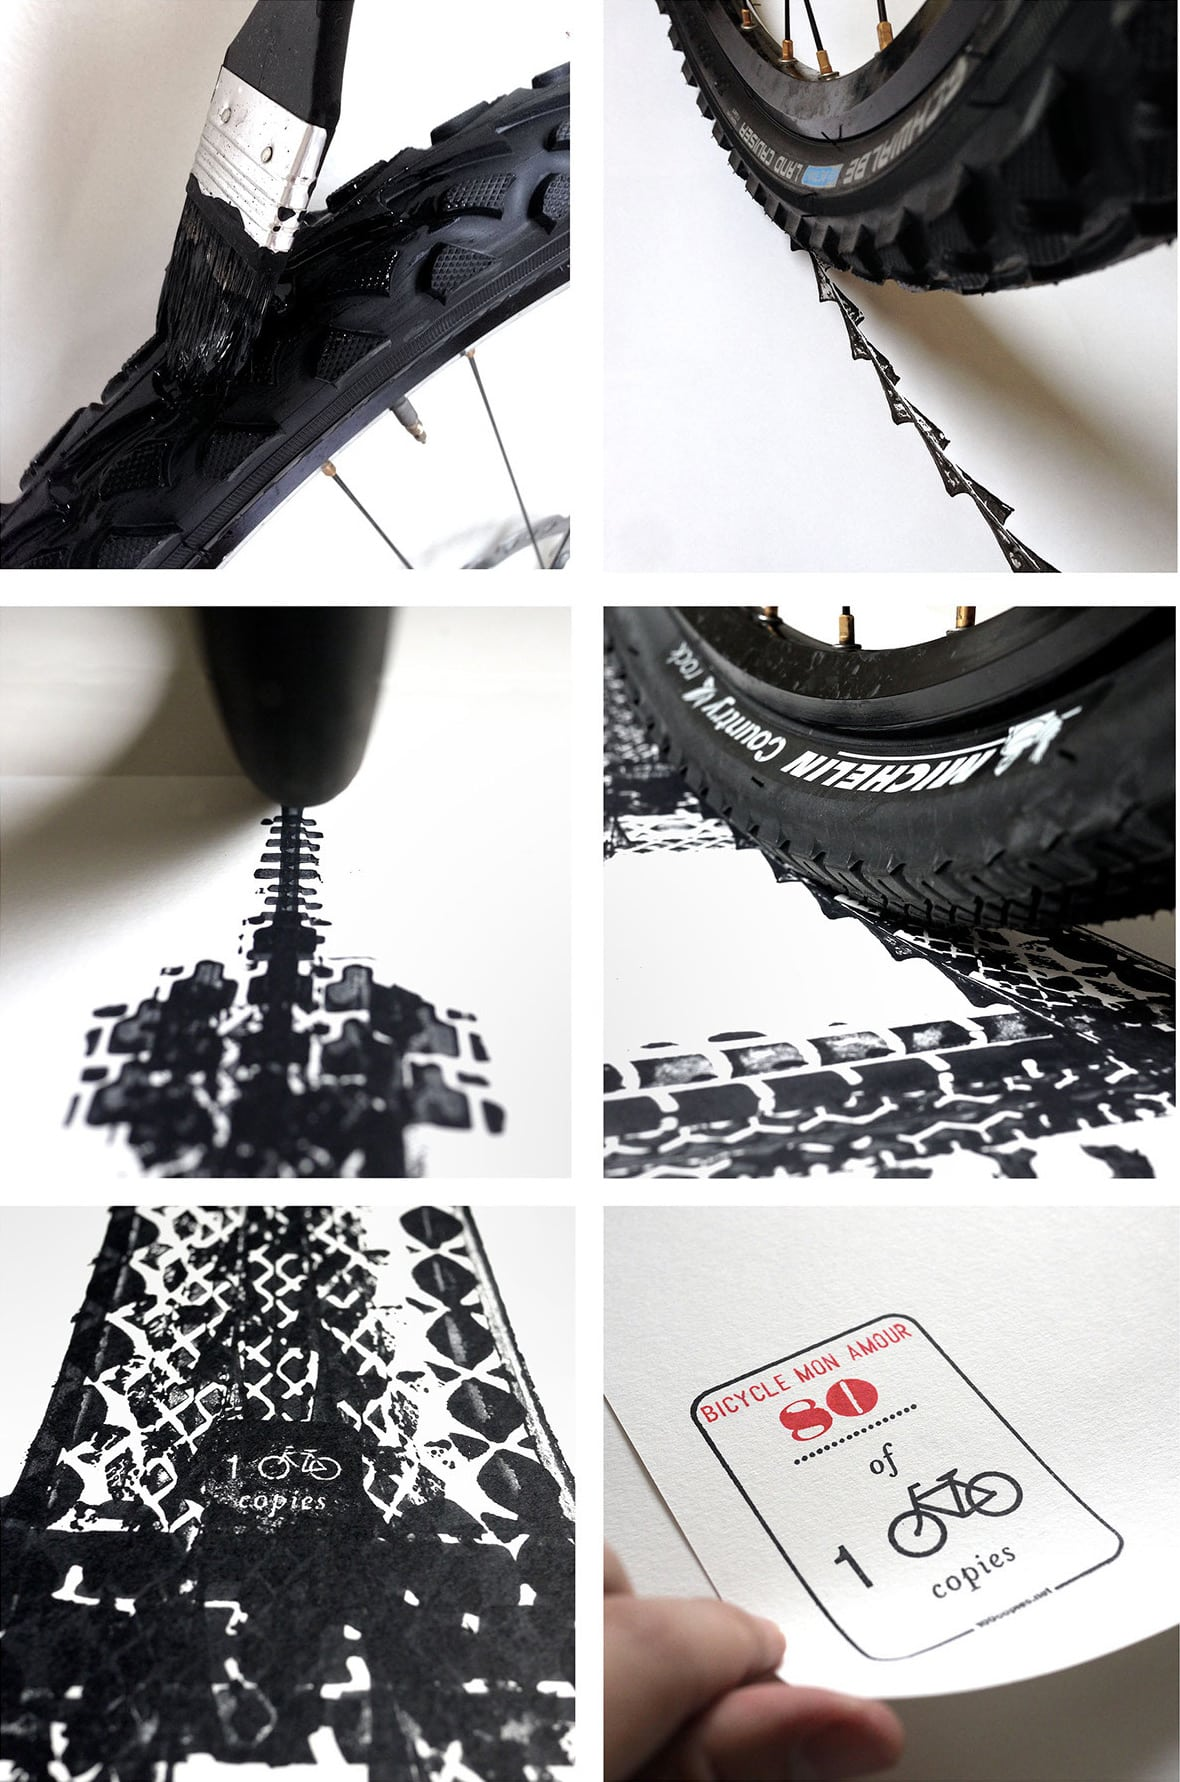 7 Architectural Landmarks Made with Bike Tire Tracks